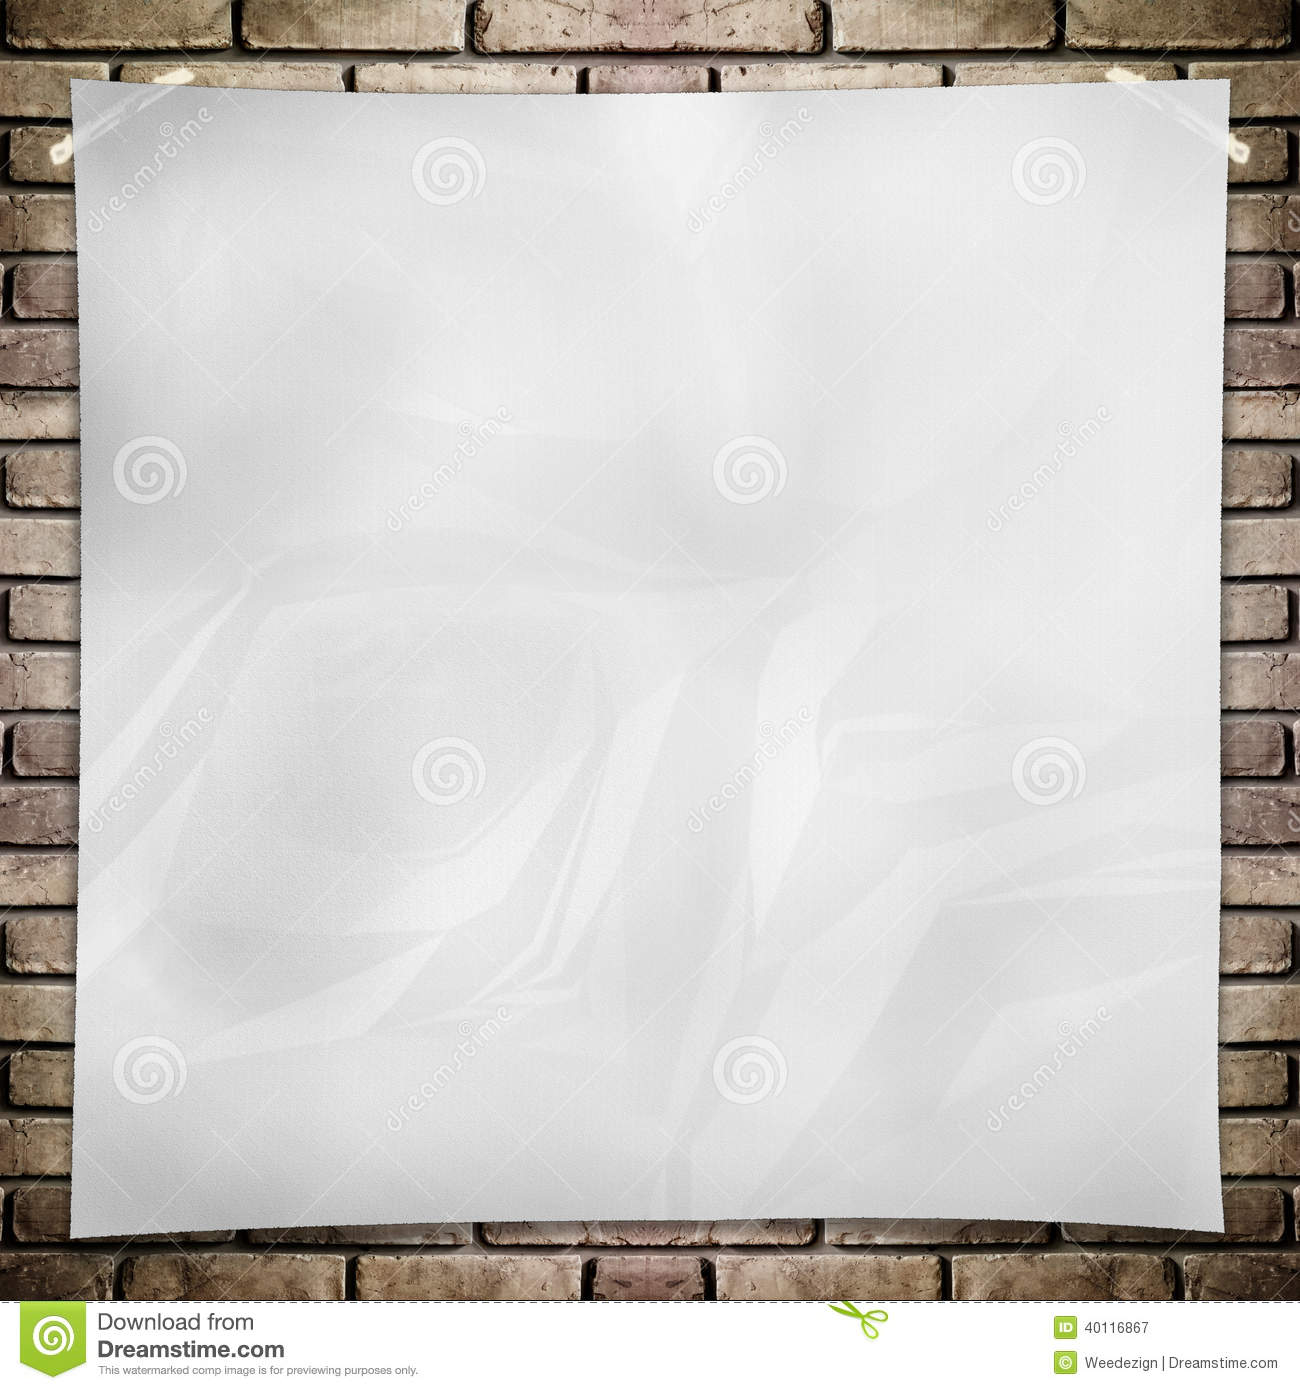 Template White Crumpled Square Poster Grunge Brick Wall Background